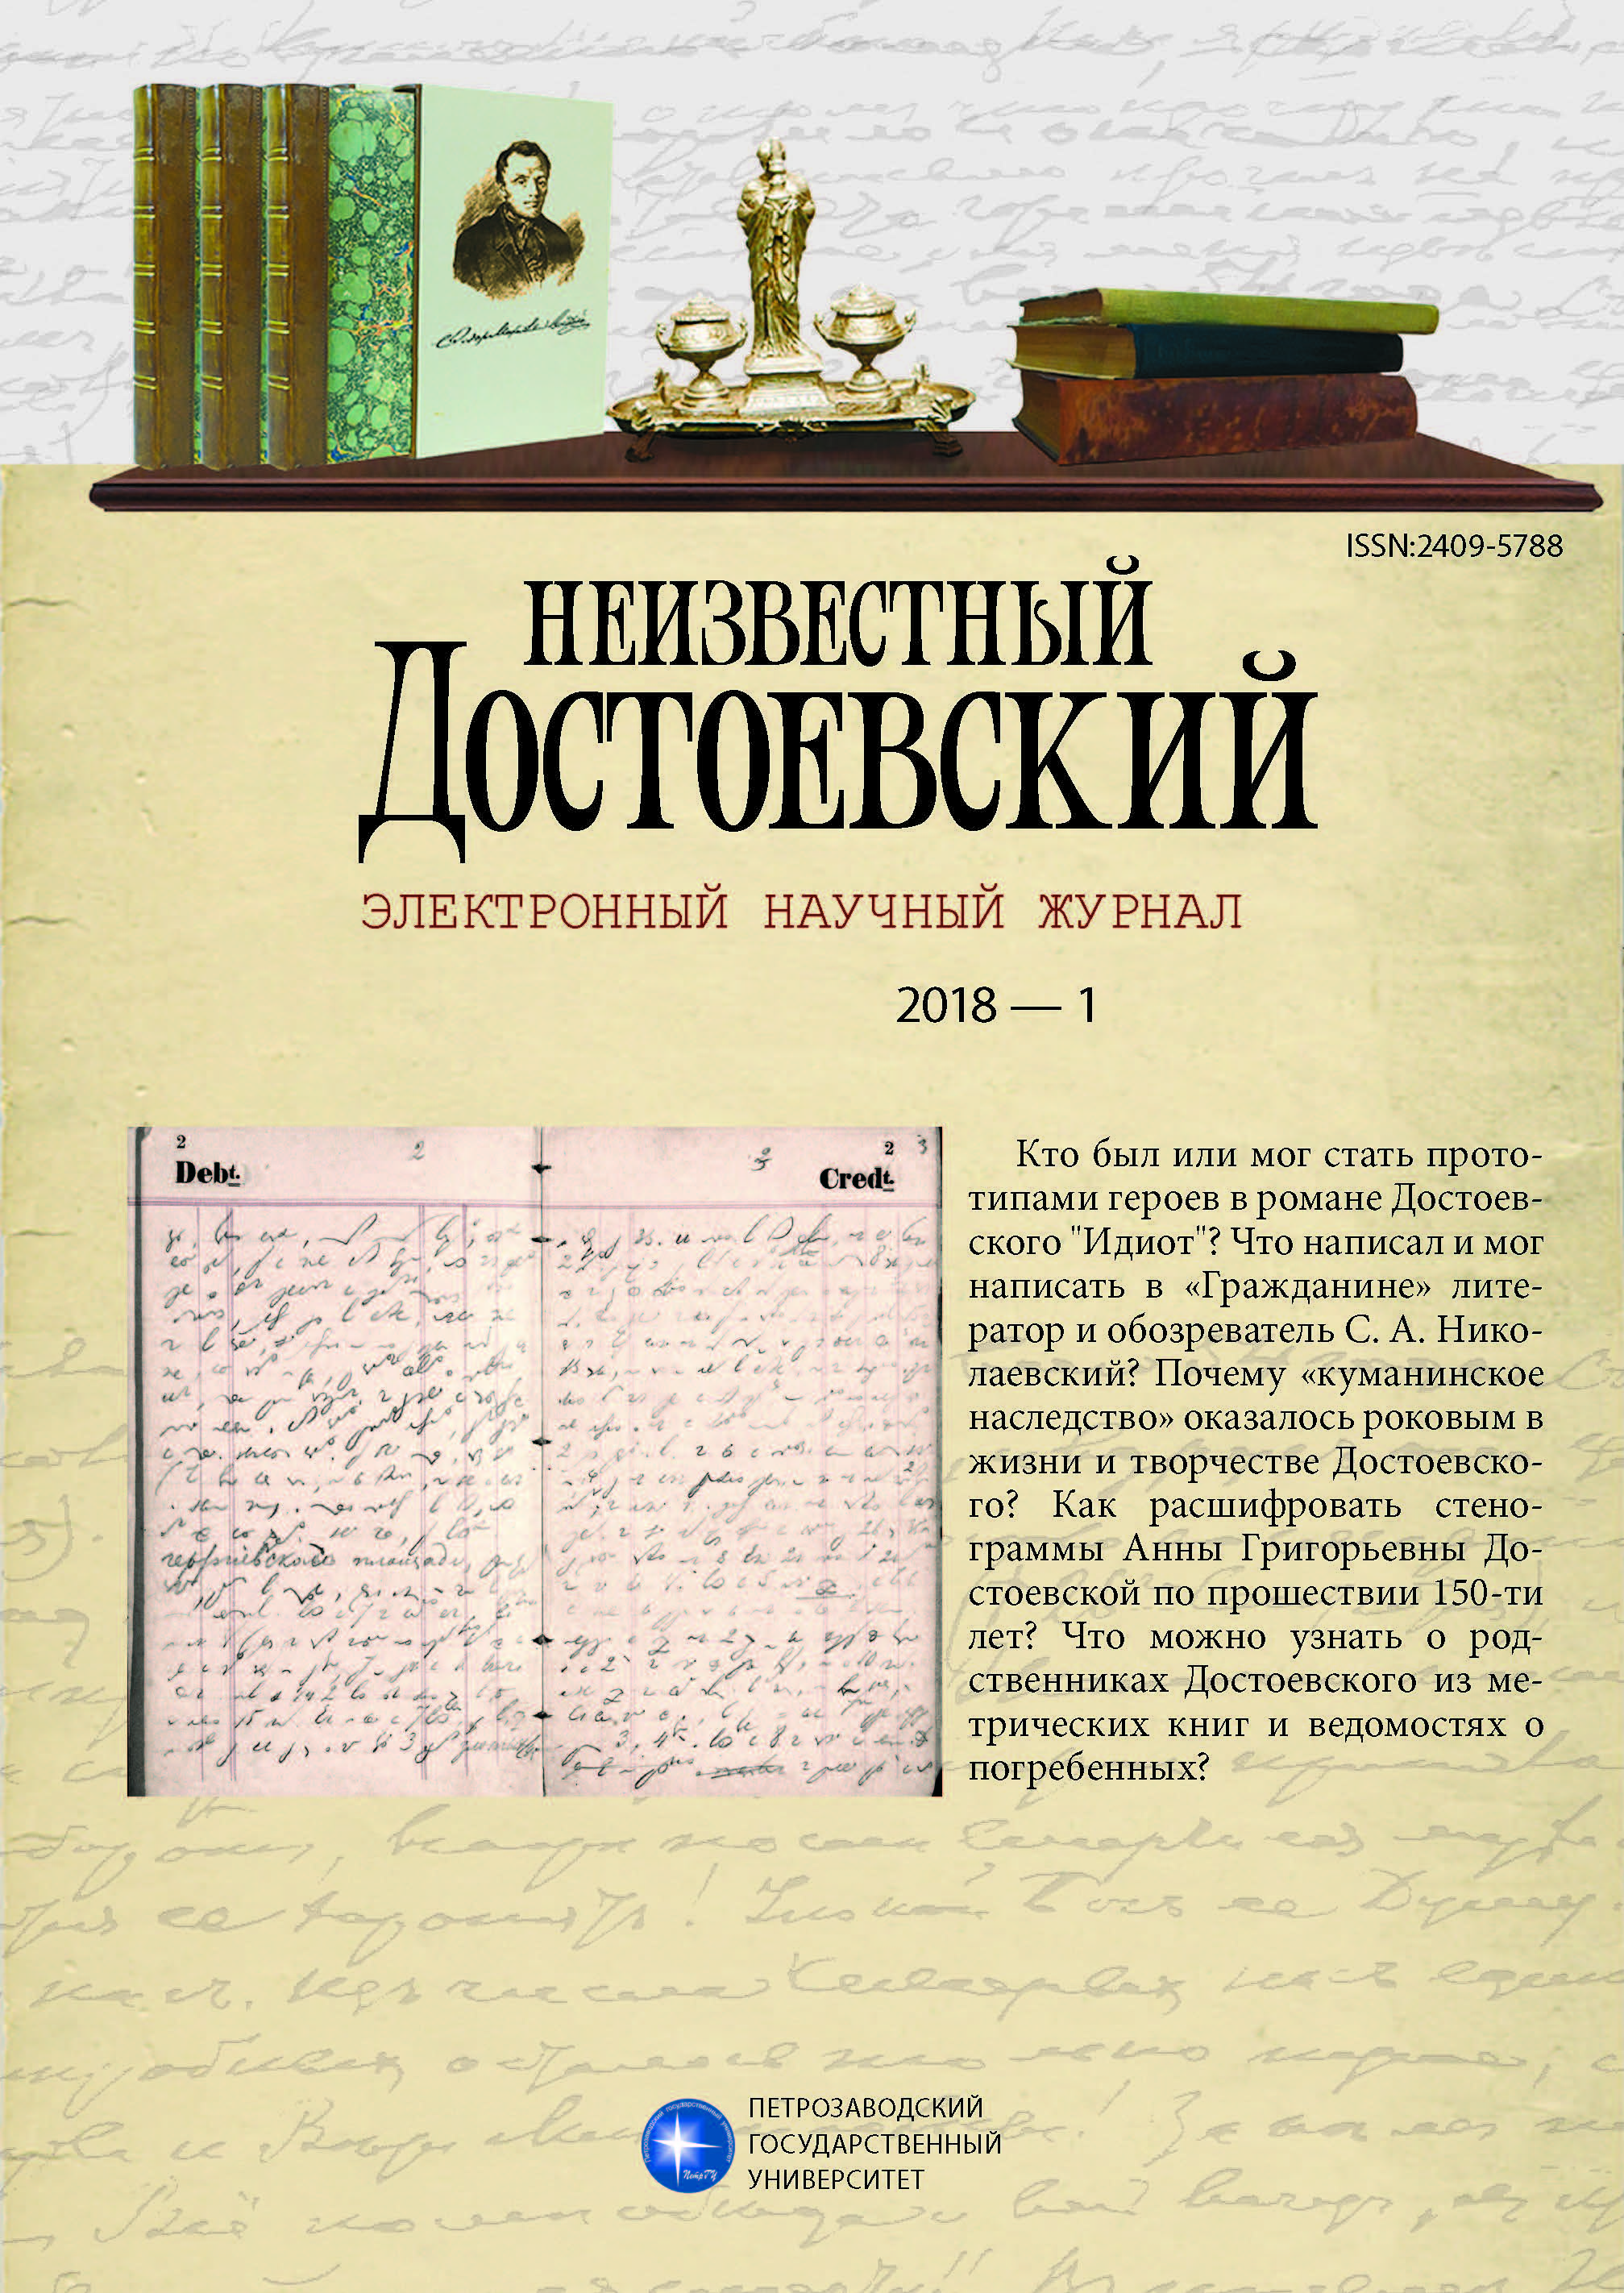 """The Kumanin Heritage Case"" in Life and Works of F. M. Dostoevsky Cover Image"